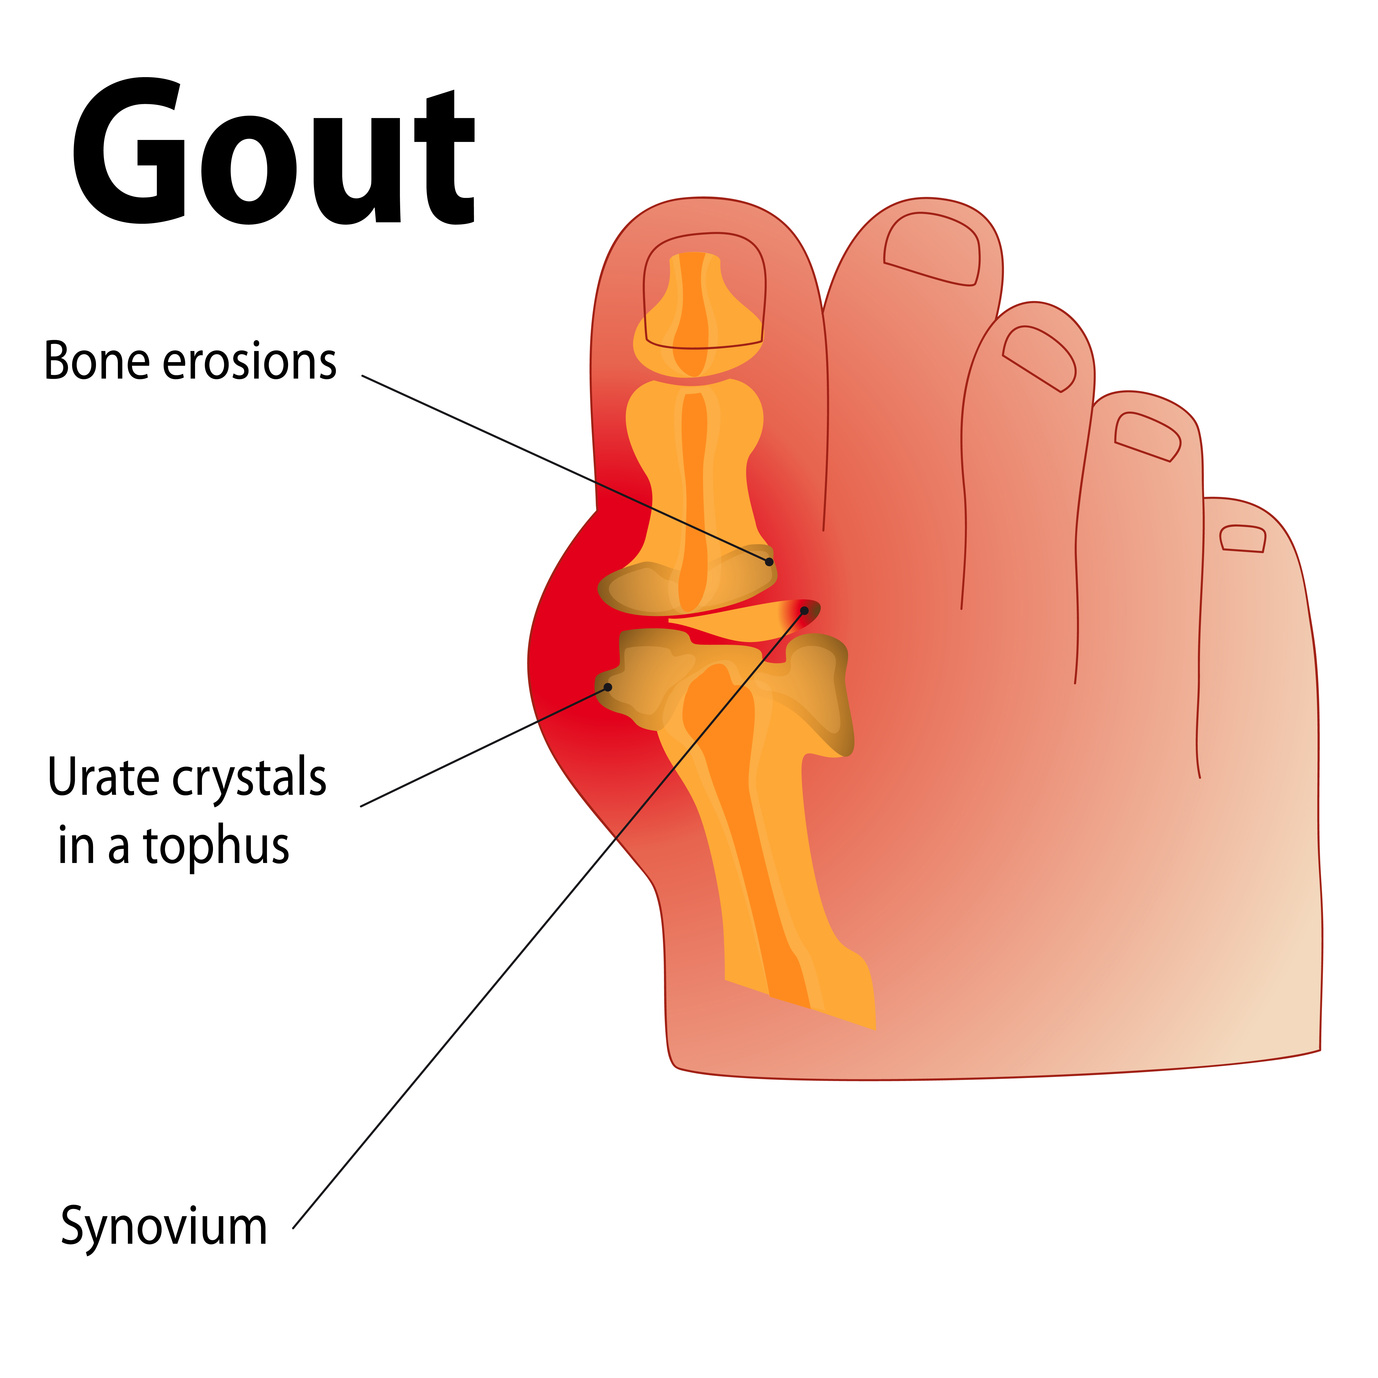 high uric acid specialist elevated uric acid levels and gout difference between gouty arthritis and rheumatoid arthritis